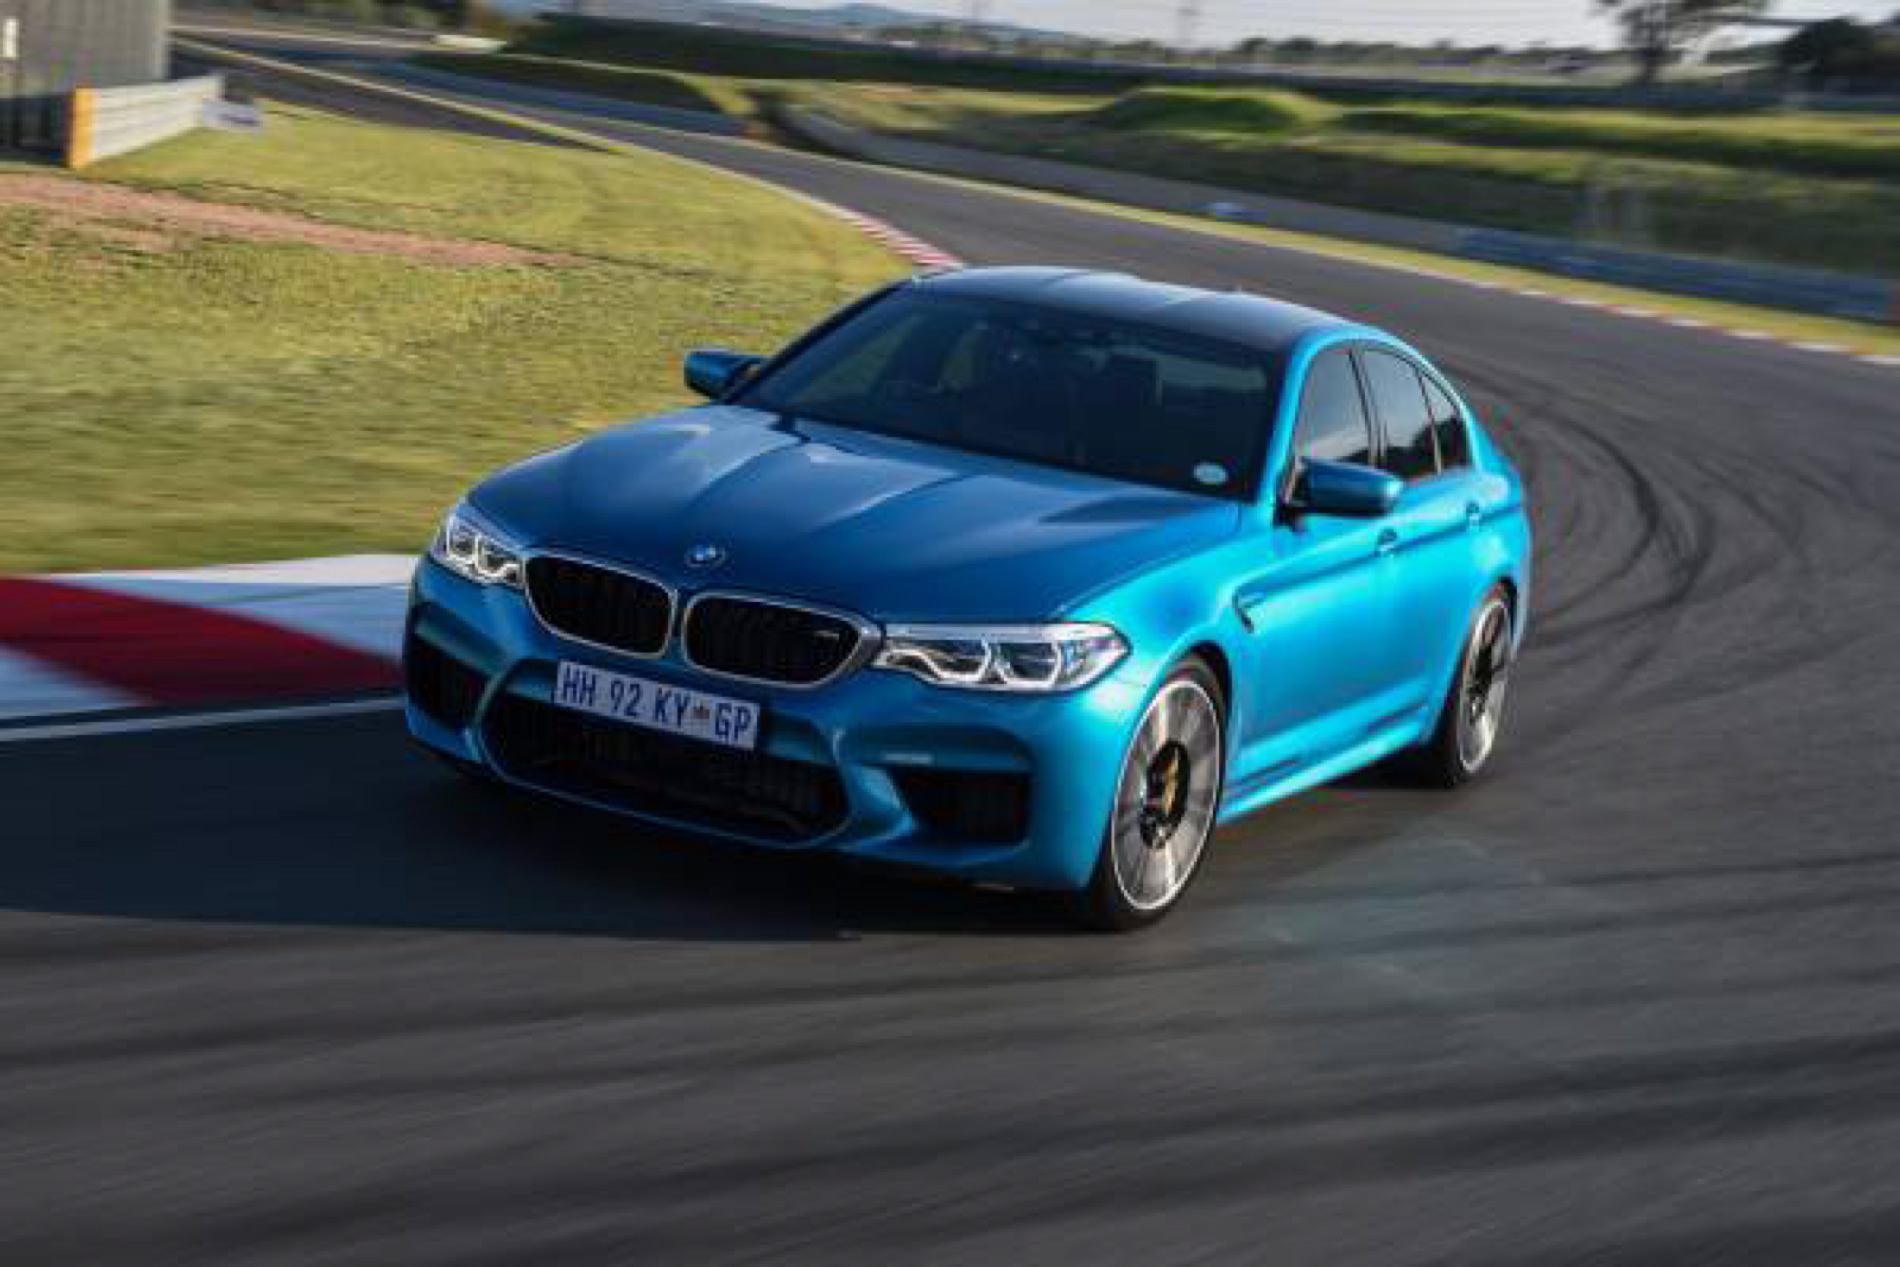 BMW M5 Snapper Rocks Blue images 19